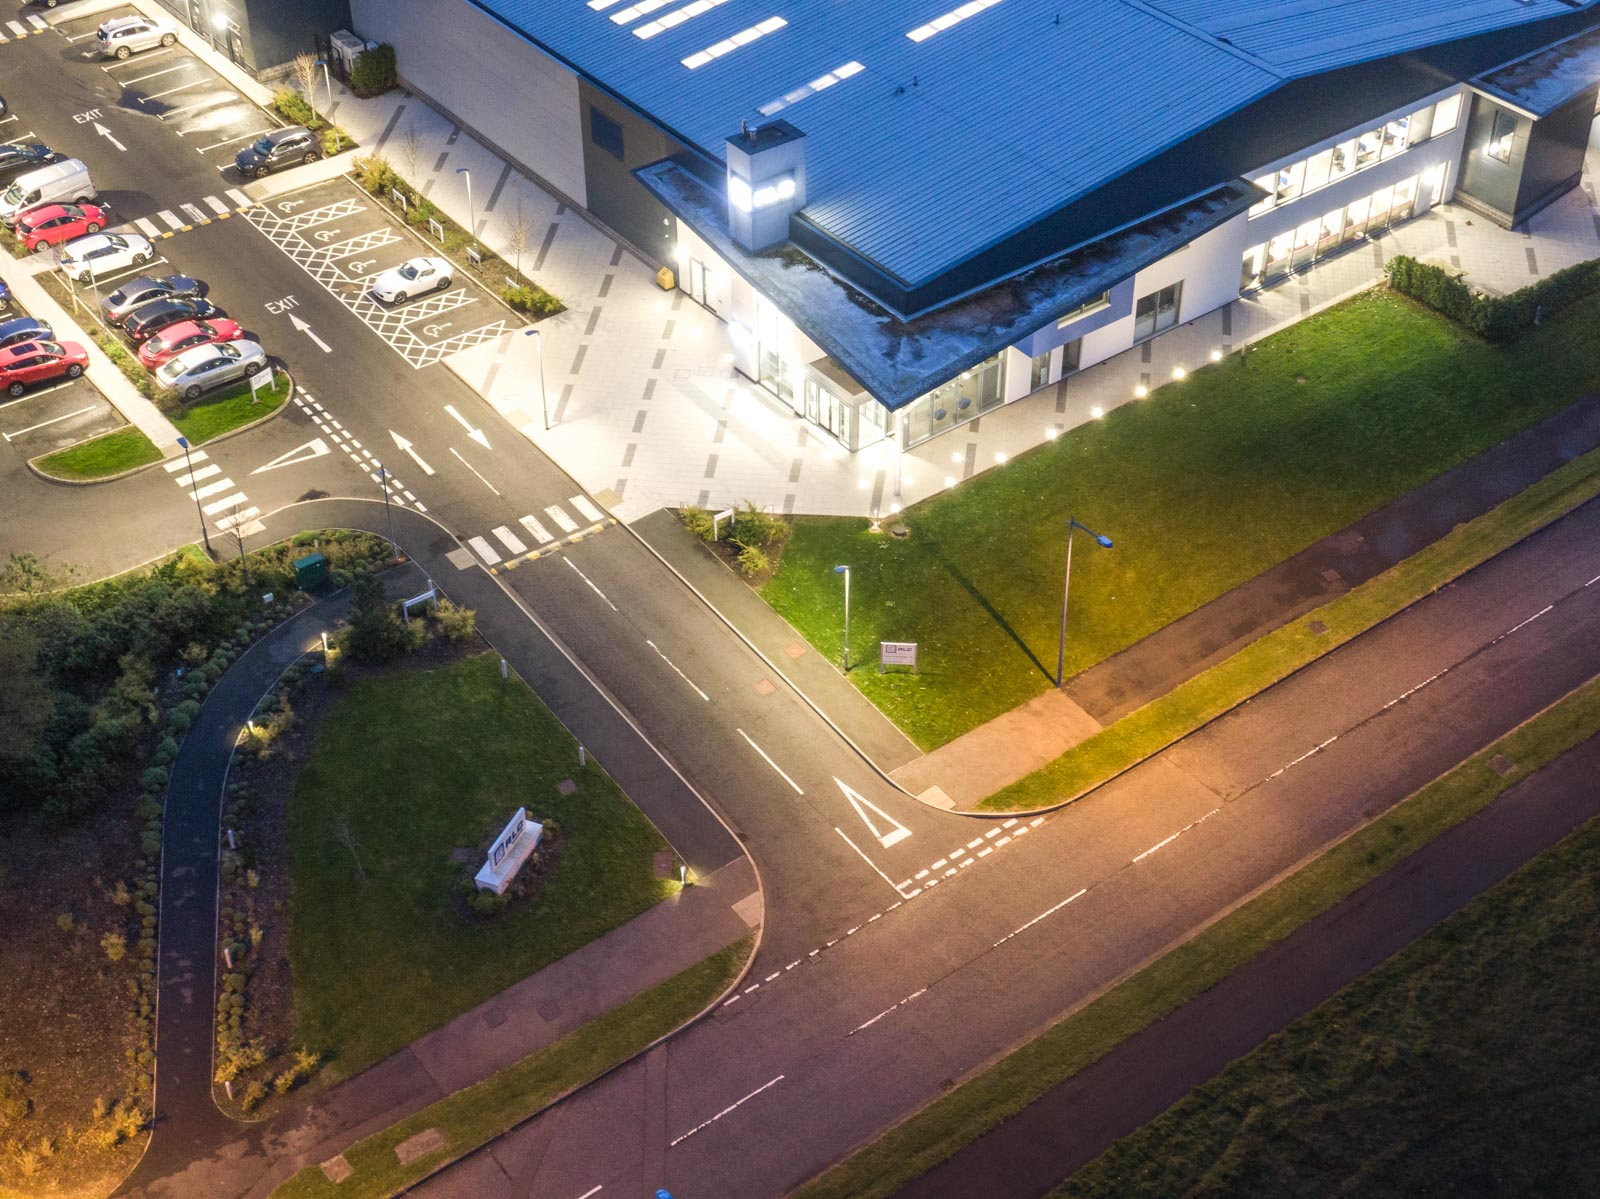 Aerial drone photography and video production services Dublin and Ireland portfolio - section 0004 of photo 0001-2 of RLC building, N. Ireland